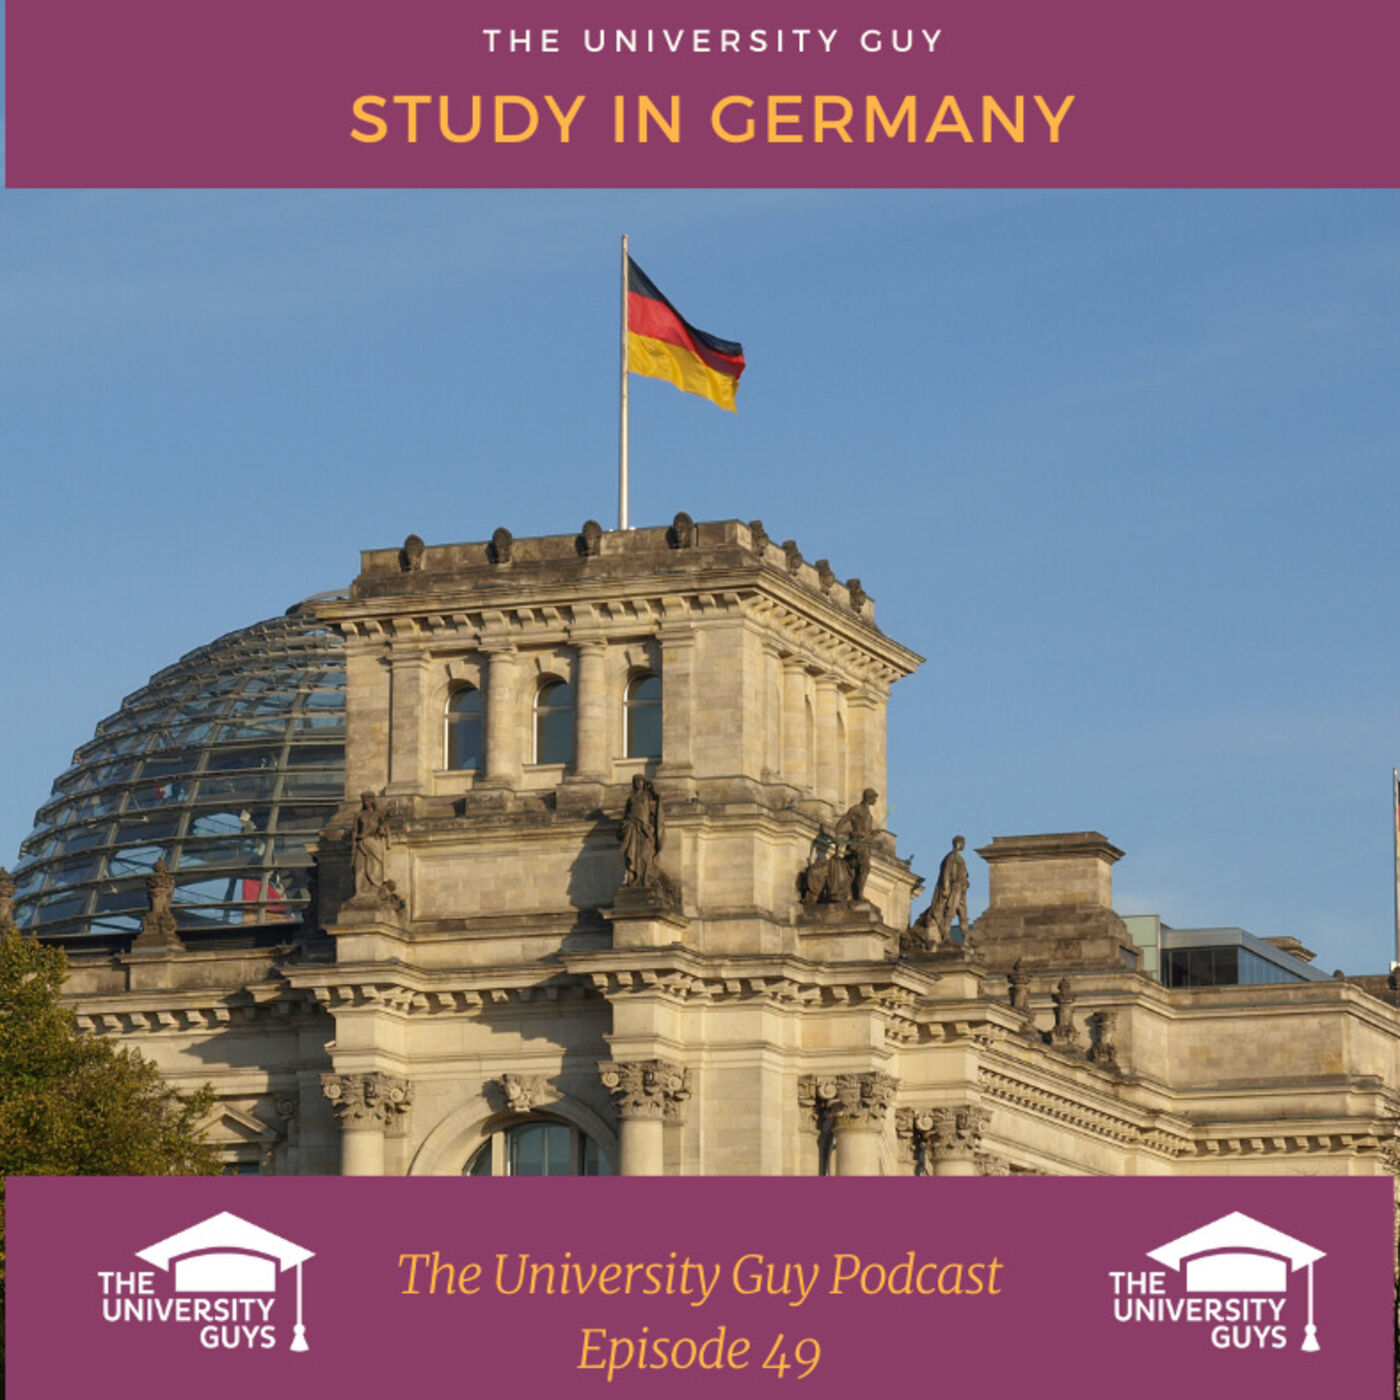 Episode 49: Study in Germany